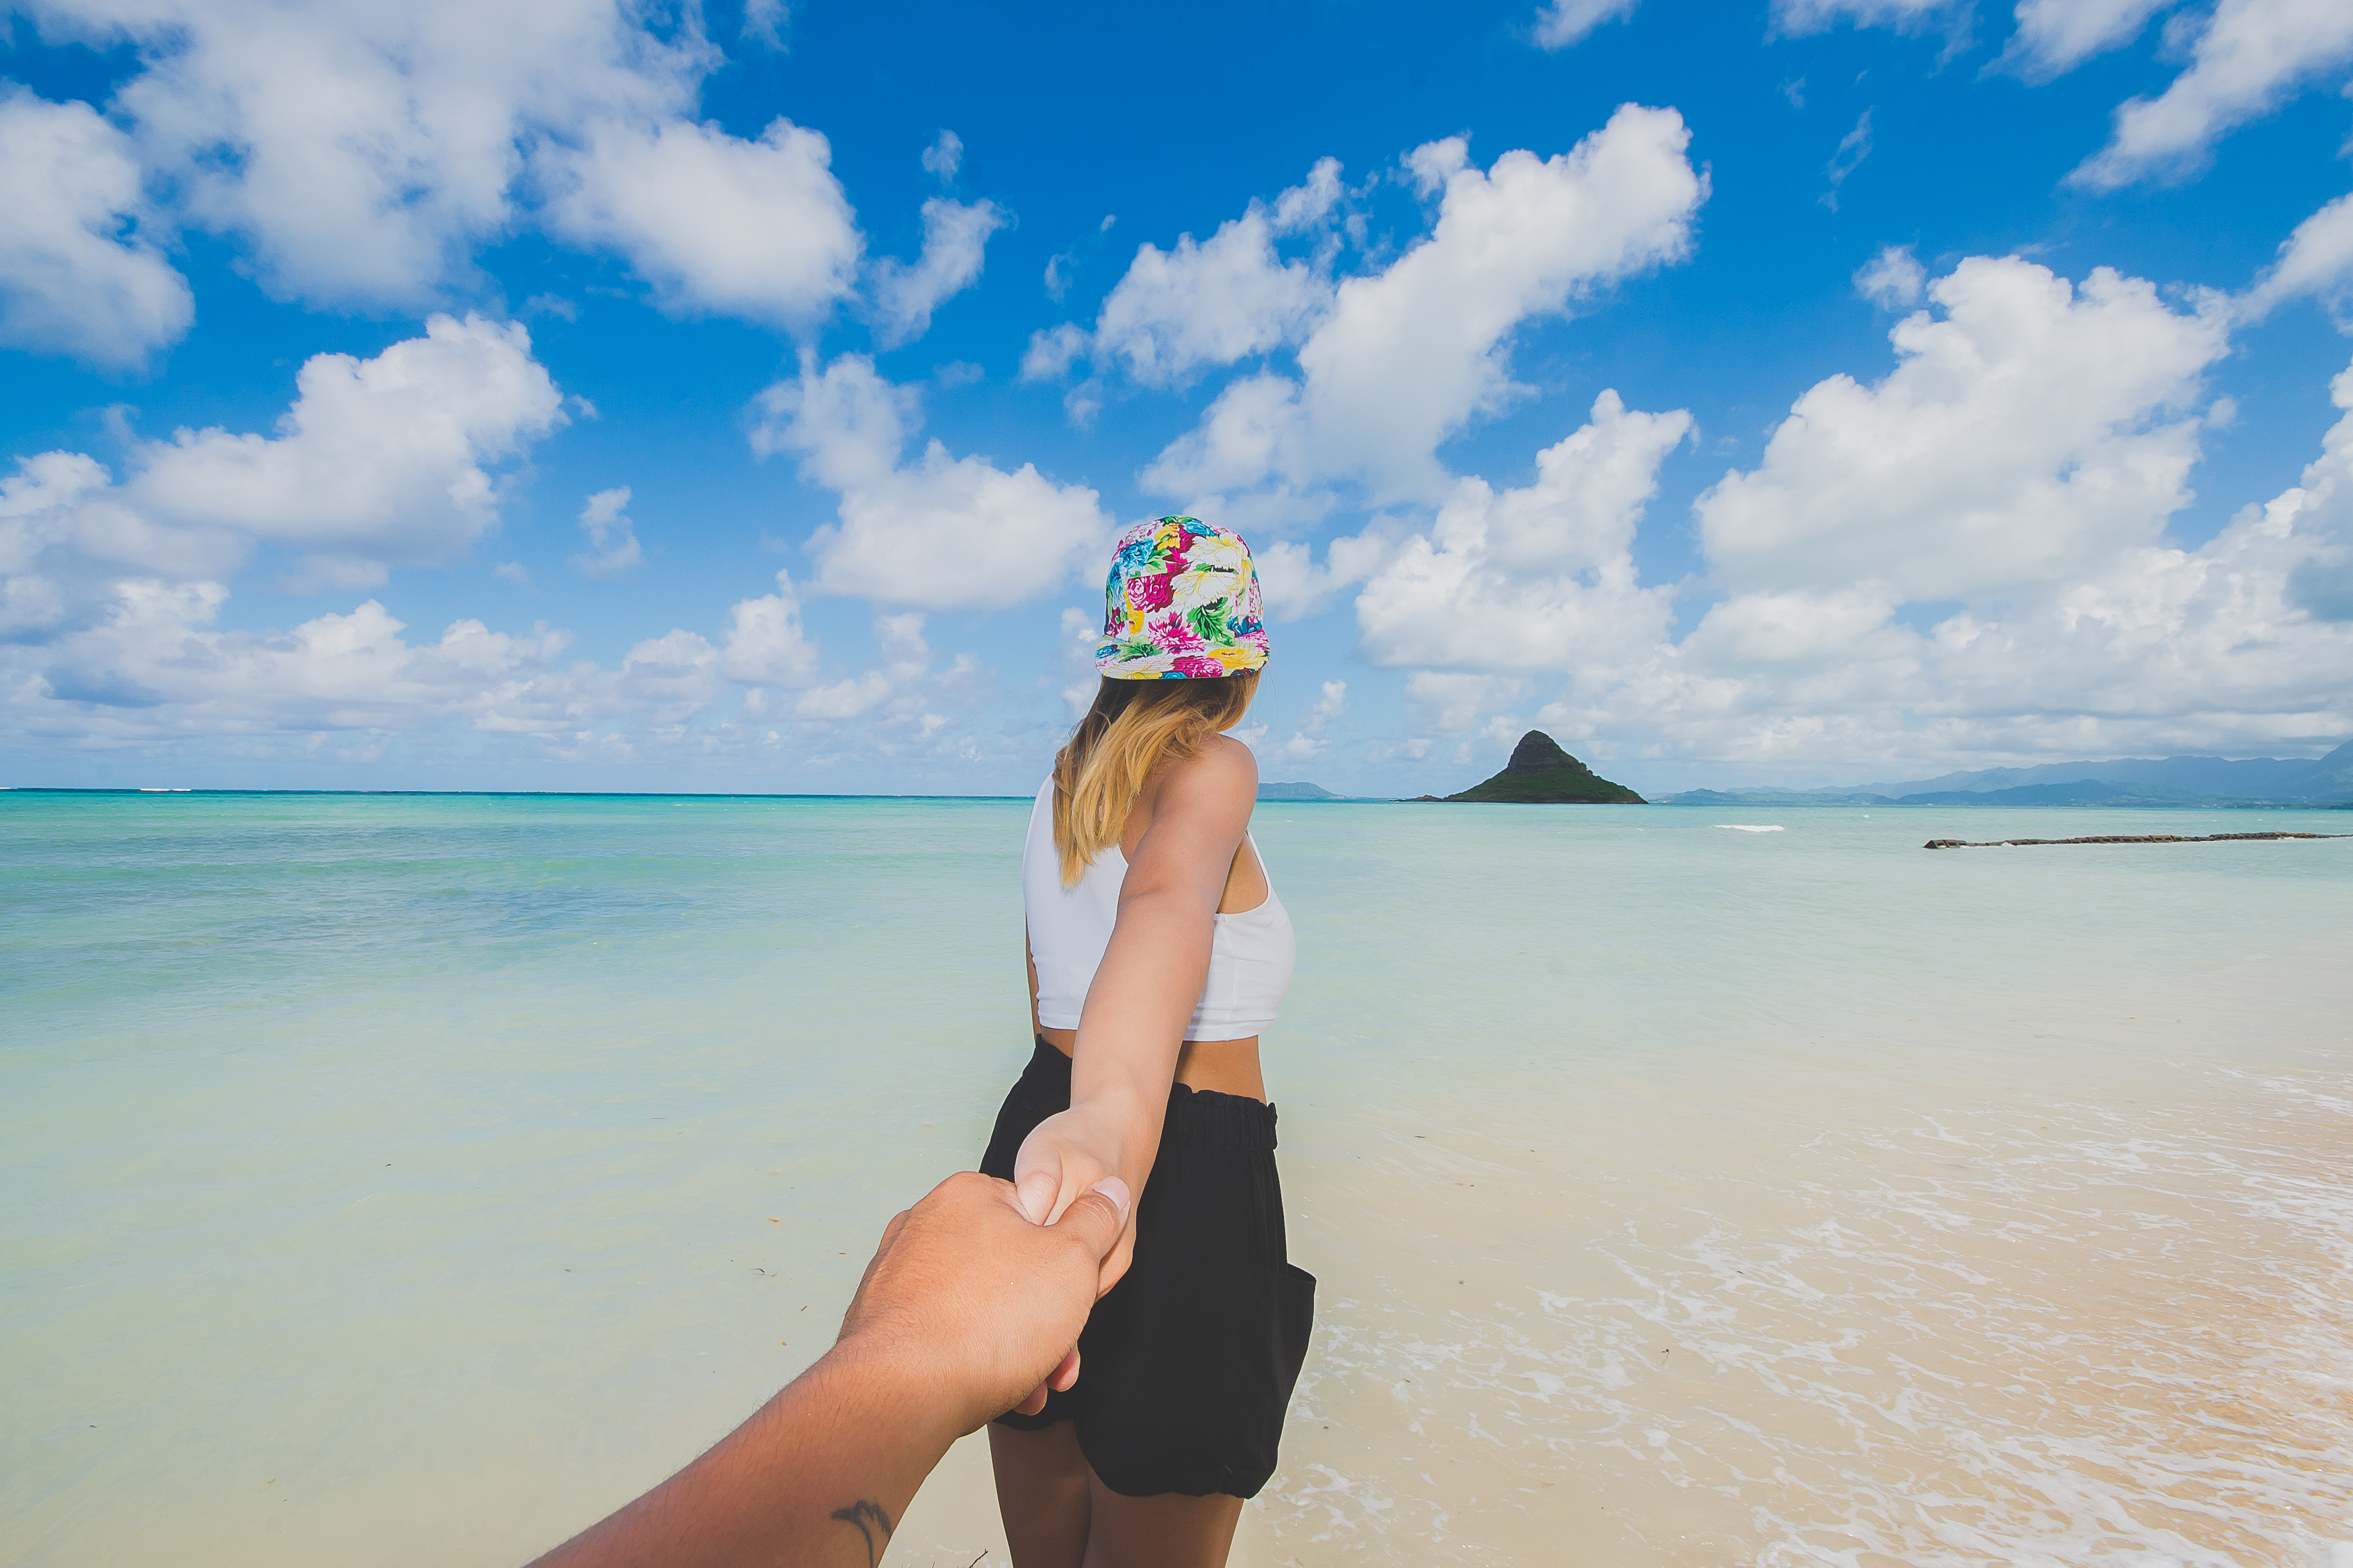 Meg_follow_hawaii_print-2